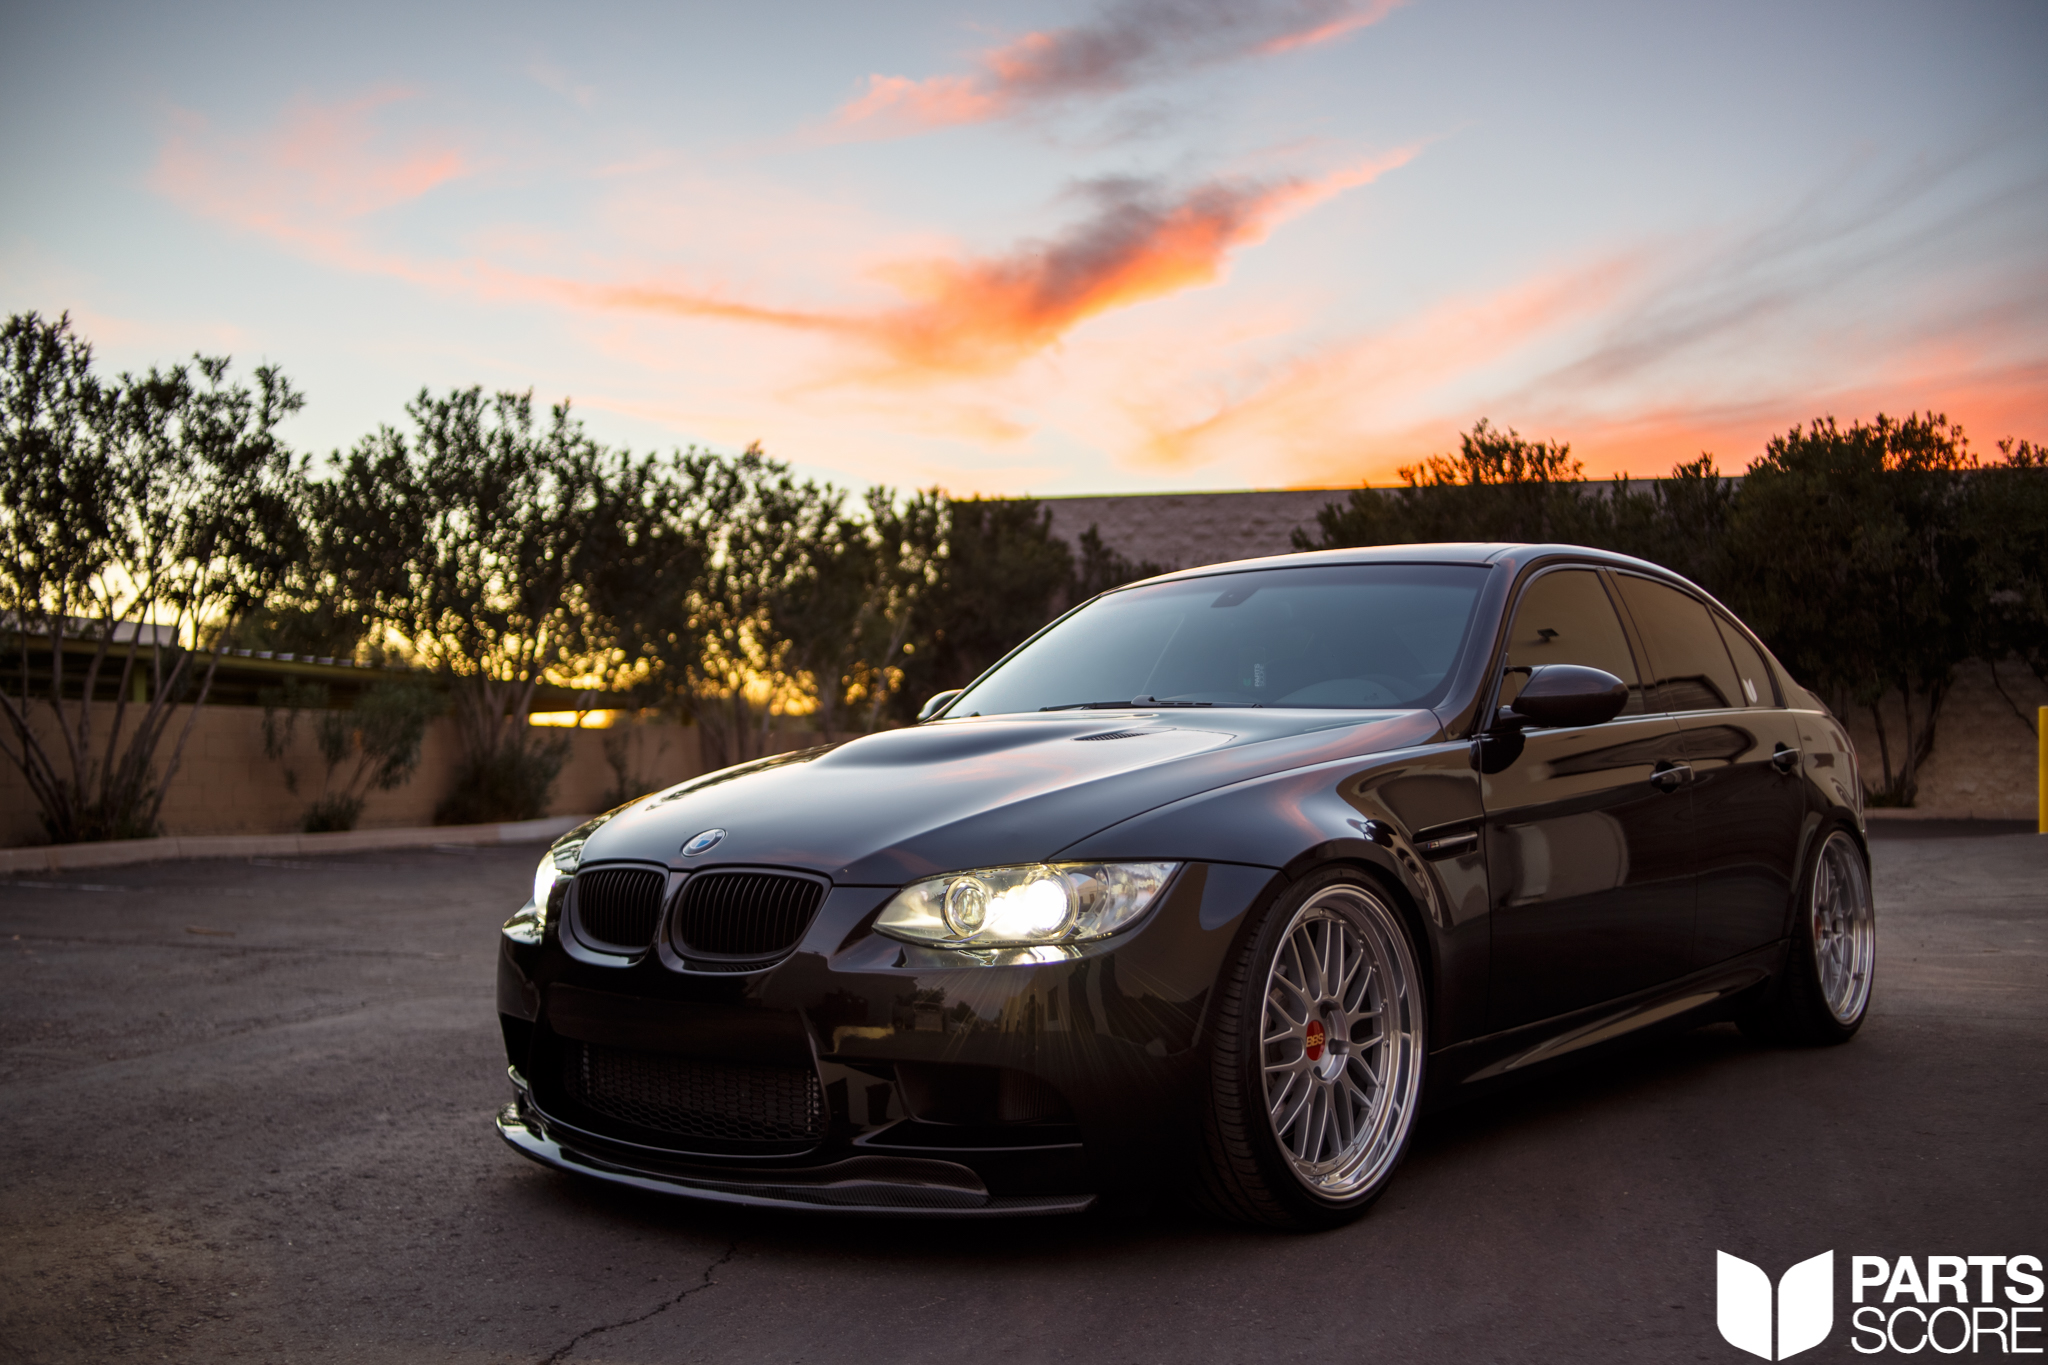 bearings, BMW, bmwm, bmwmperformance, bmwmpower, boost, canibeat, conduktco, e90m3, m3, mpower, parts score, partsscore, powdercoat, powdercoating, rod, rod bearing, rod bearing failure, rod bearing recall, rodbearings, s65, s65 rod bearing, s65 rod bearing failure, s65 v8, sheerdrivingpleasure, Supercharged, supercharged m3, supercharger, v8, vac, esstuning, ess, esstuned, supercharged, vortech, vortechv3si